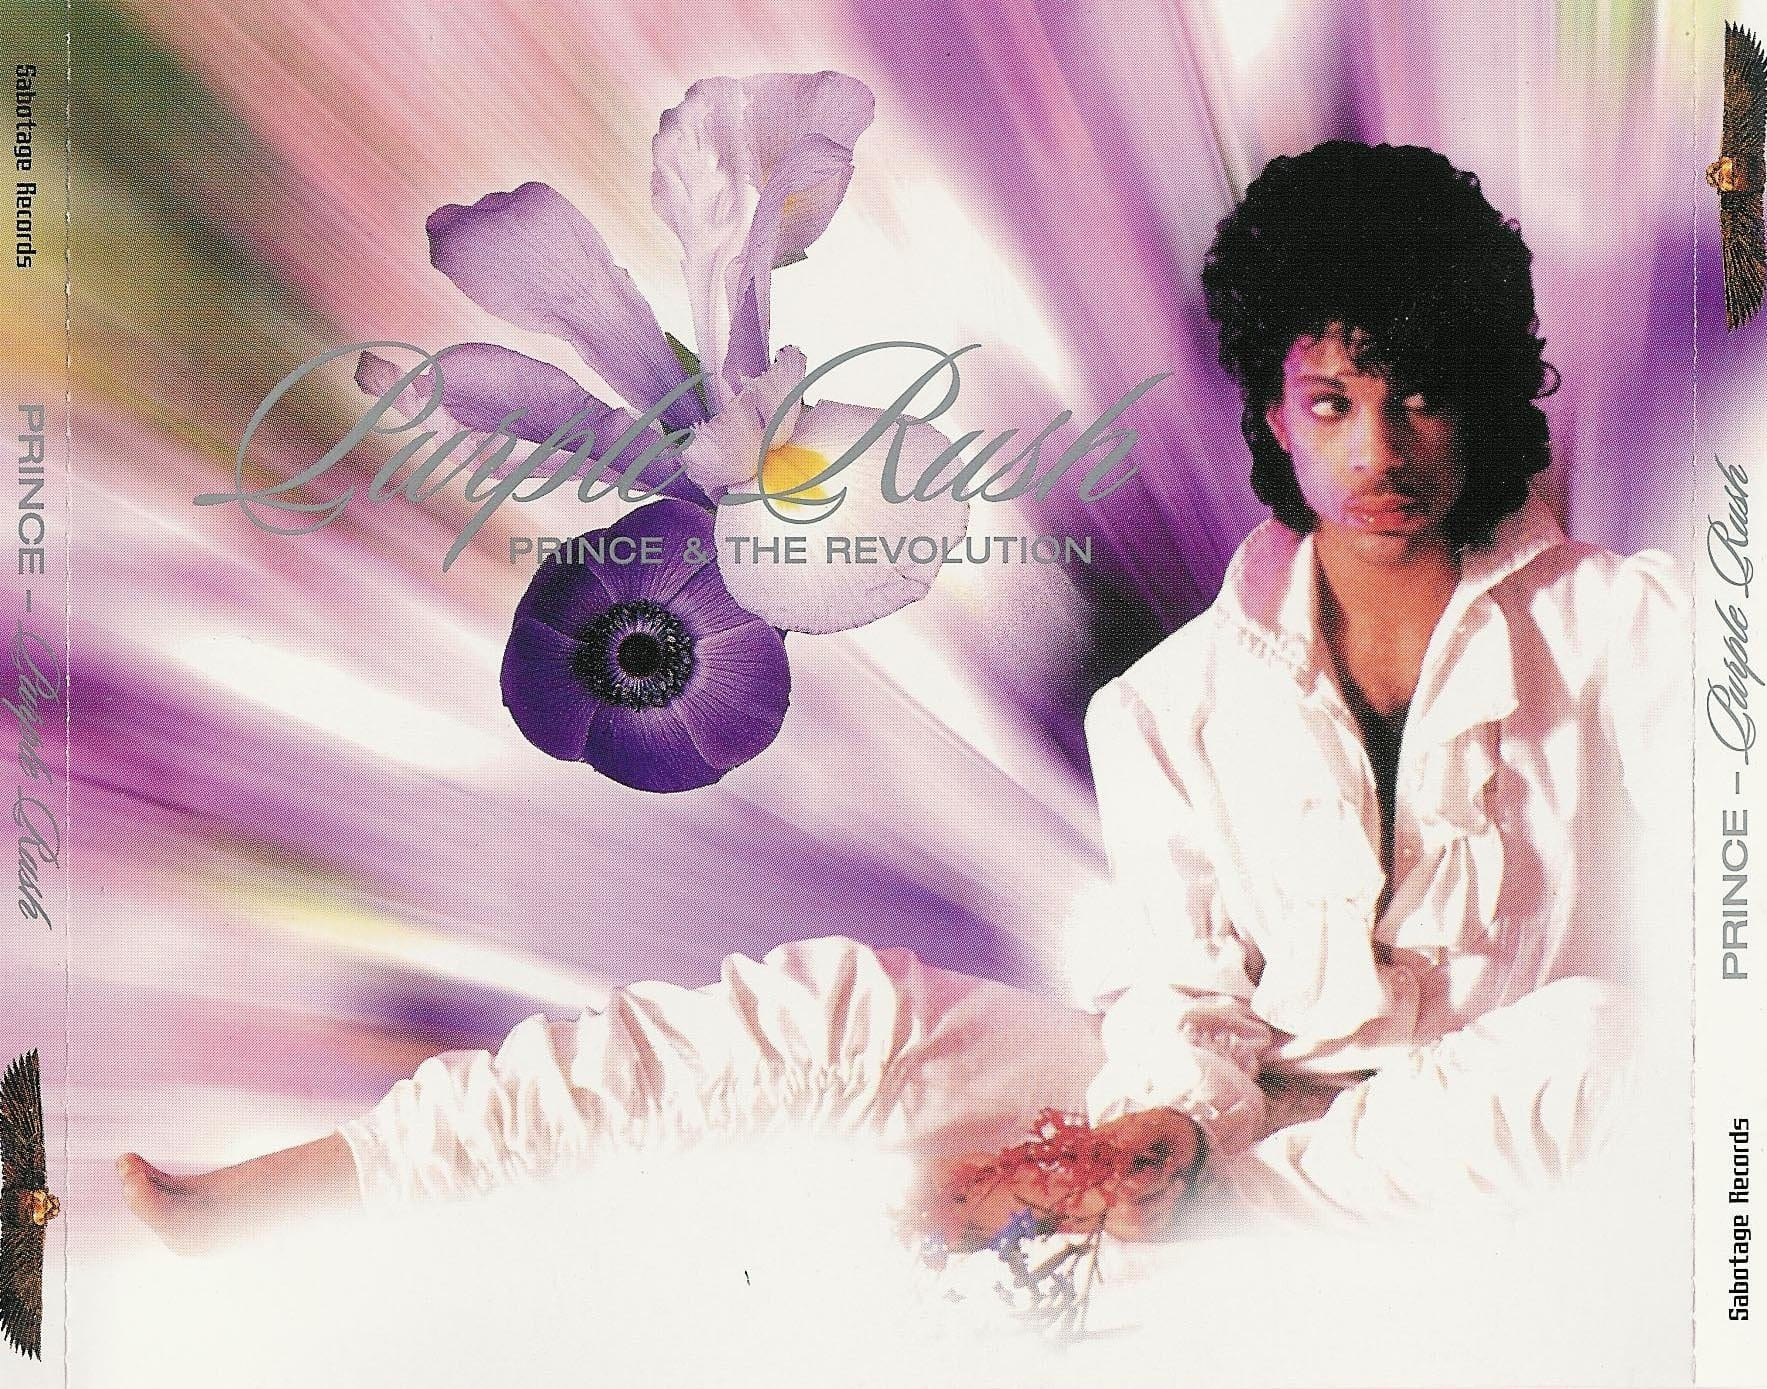 Prince And The Revolution - Purple Rush 1: Rehearsals & Concerts 1983-85 (2008) 6 CD SET 10